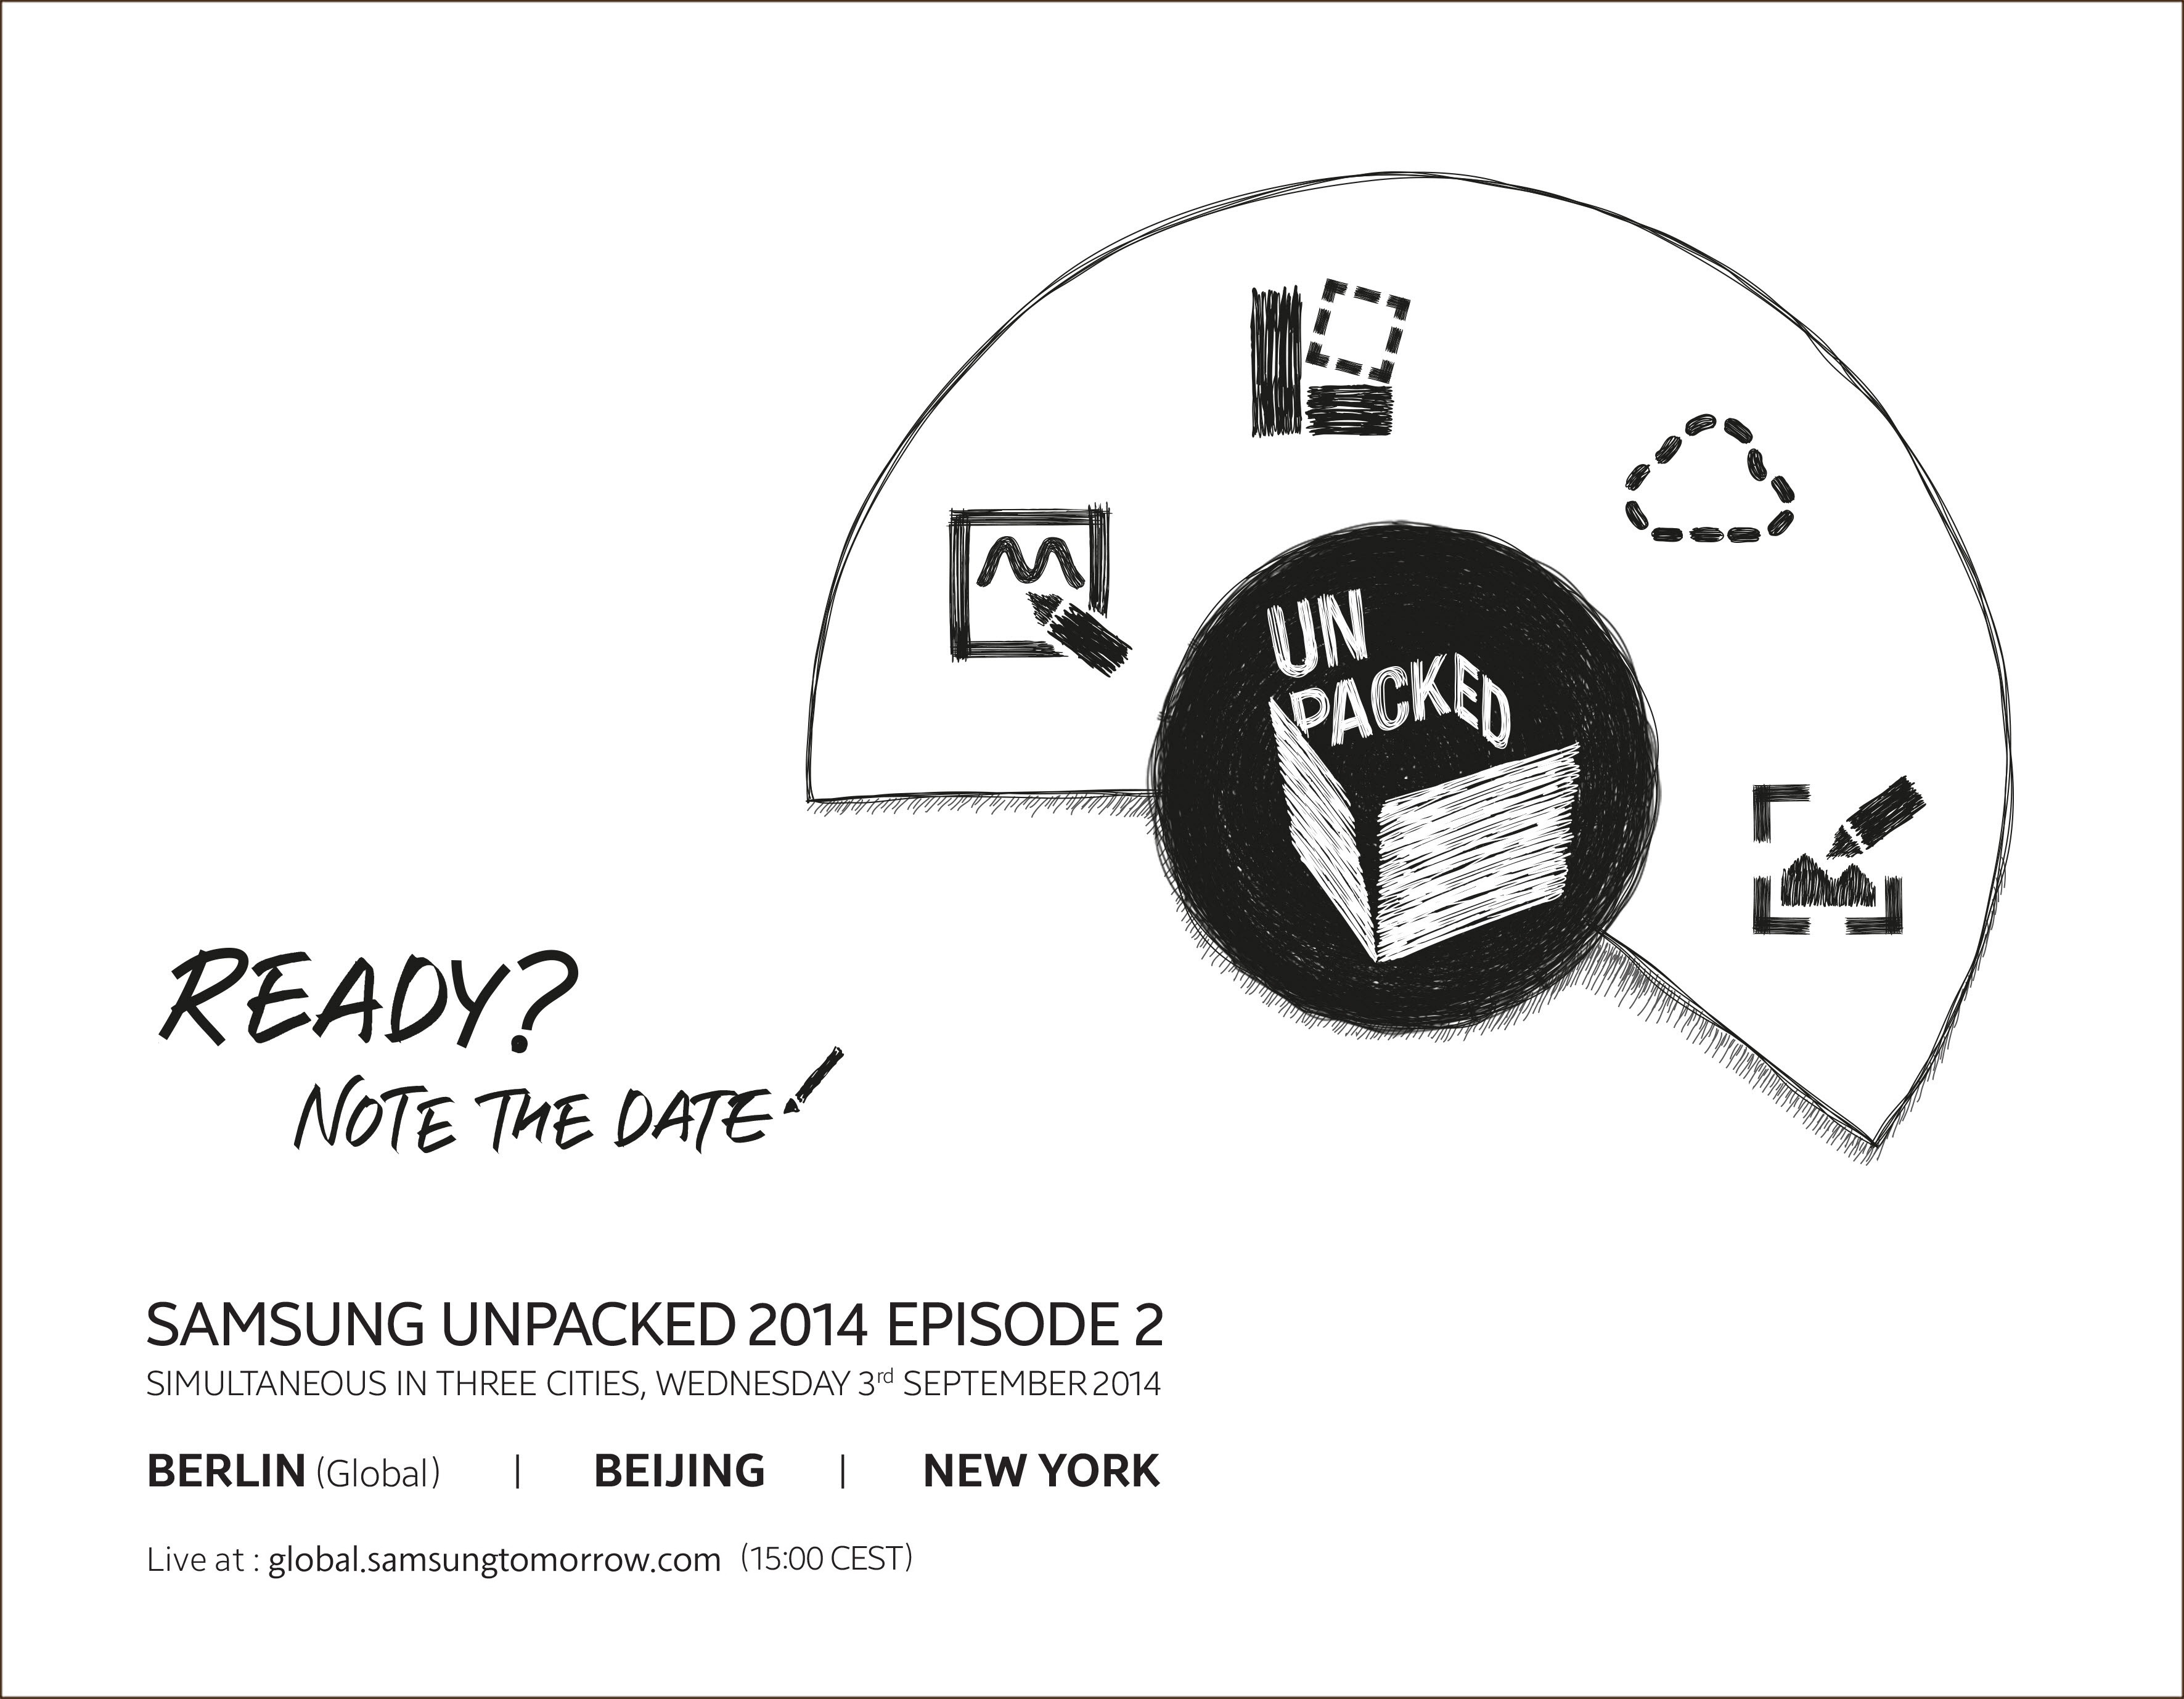 Unpacked Episode 2 - Note 4